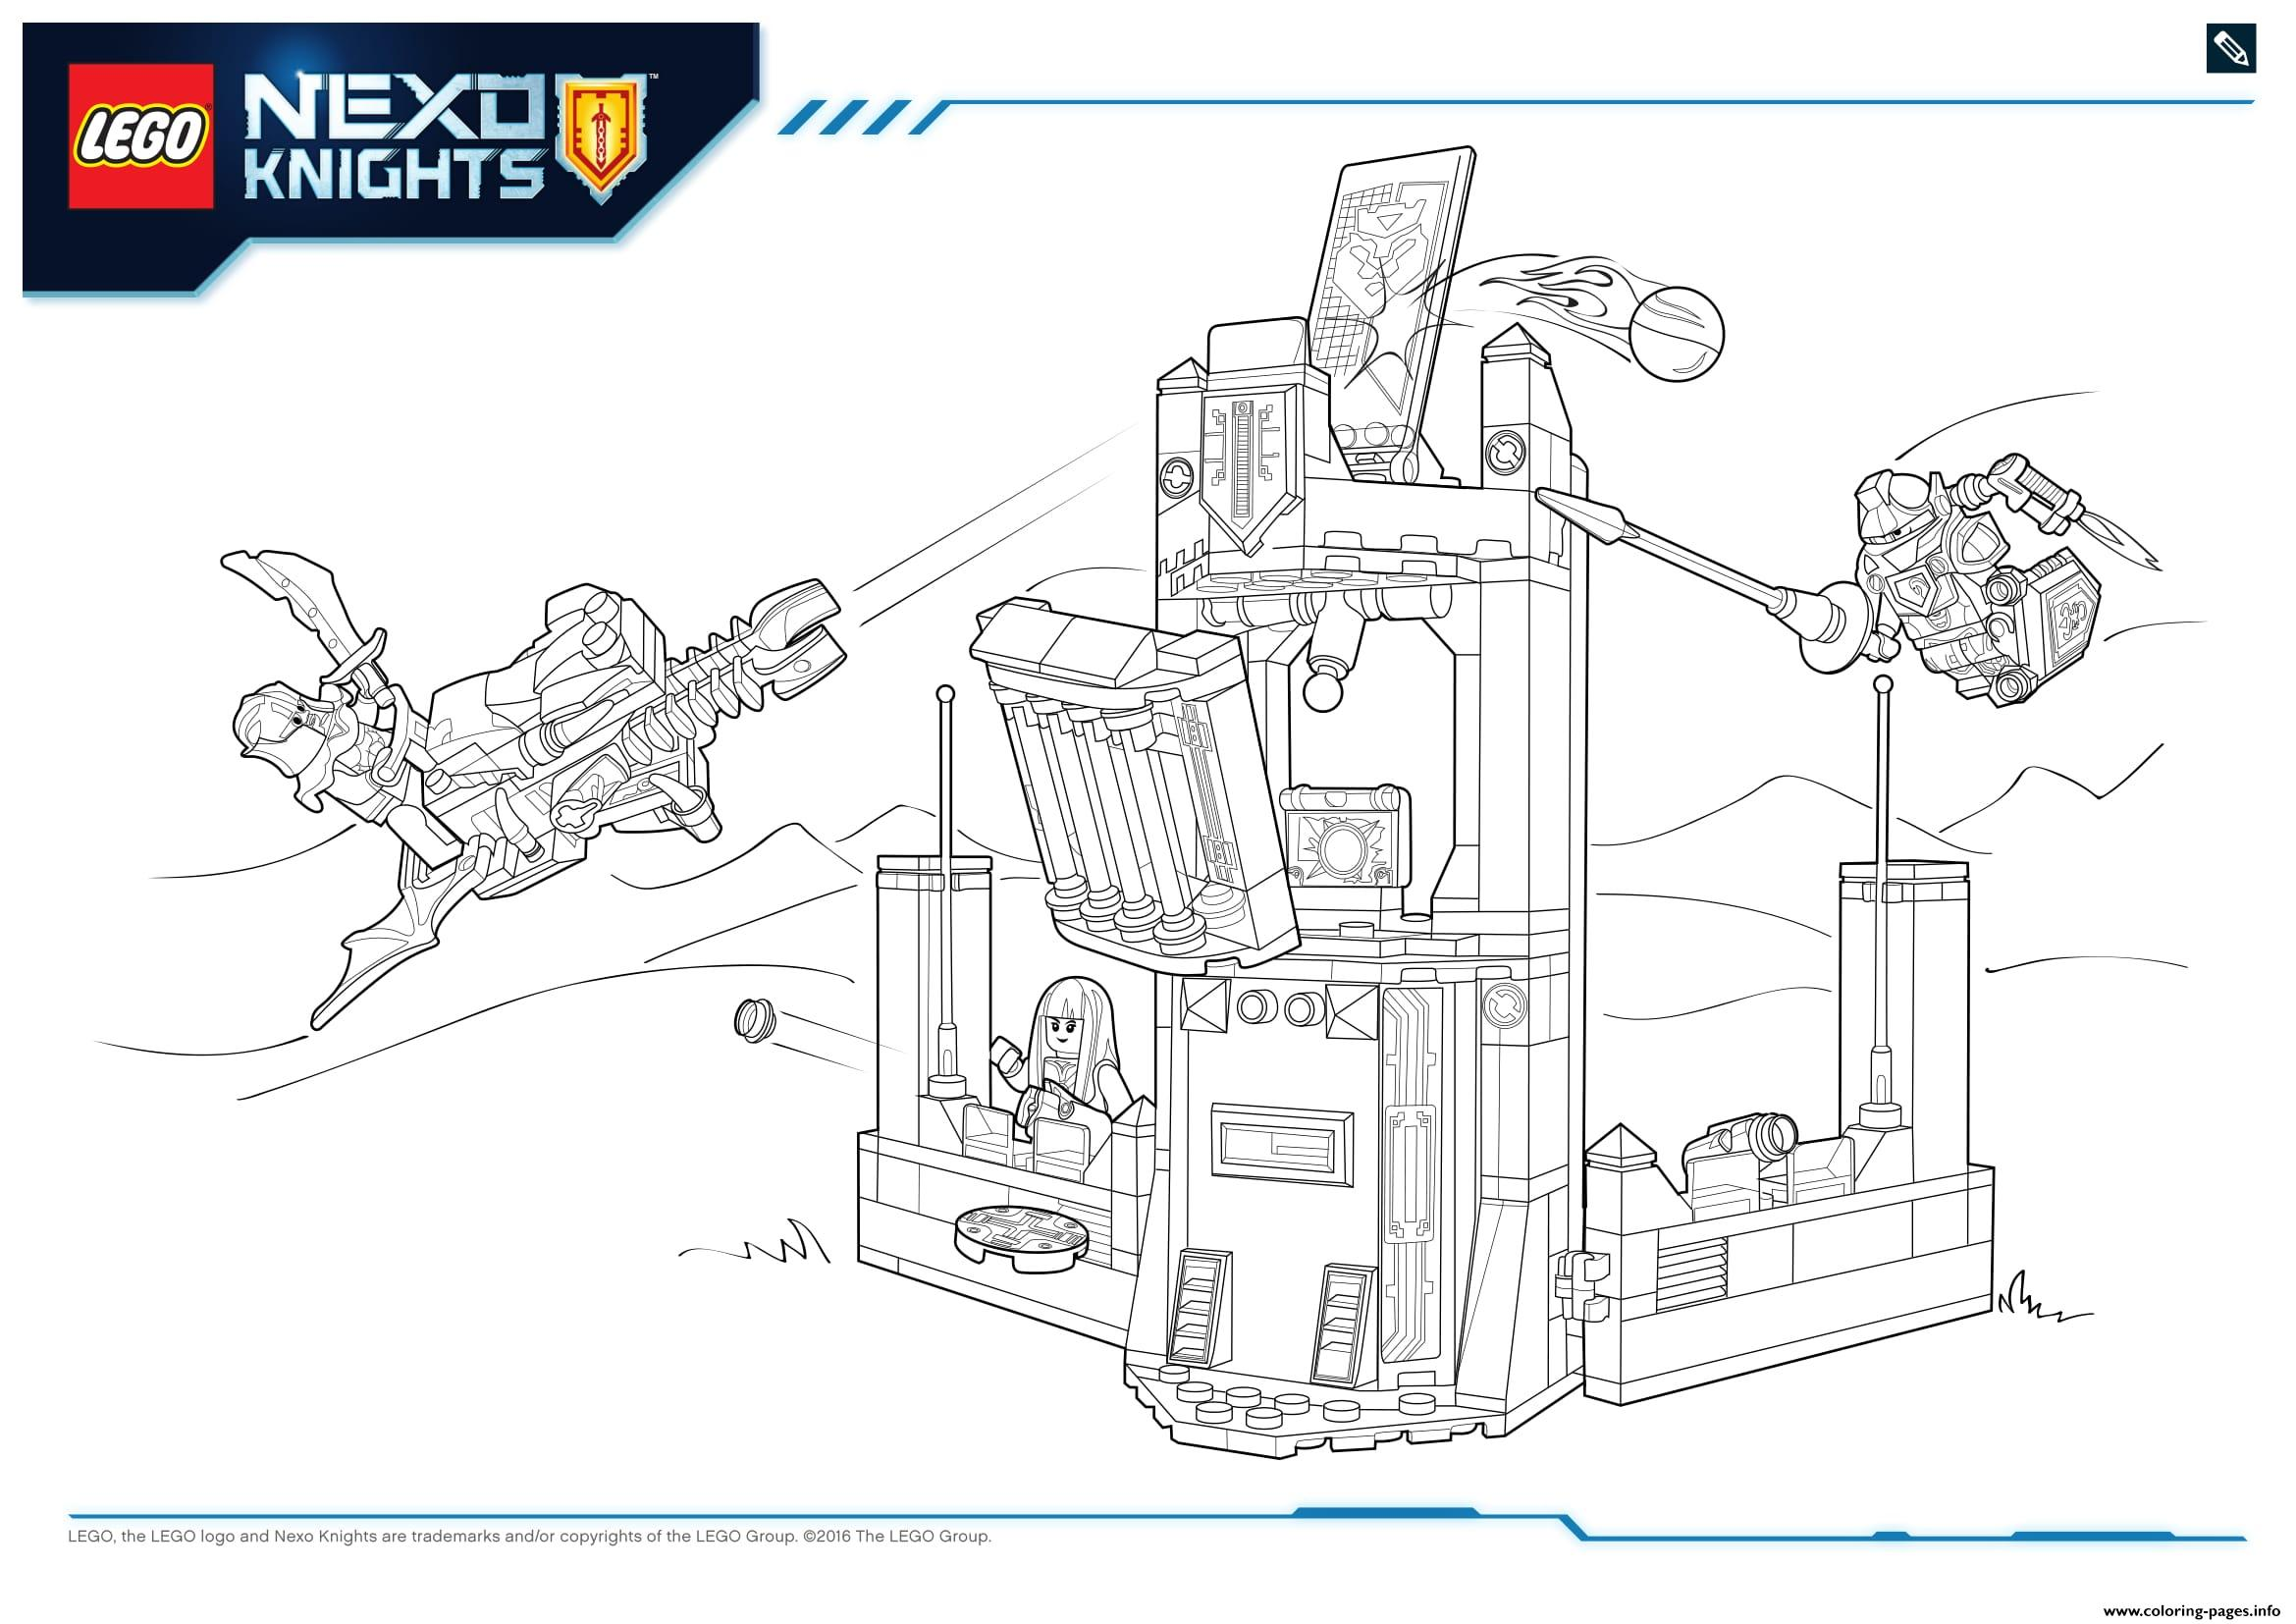 Lego NEXO KNIGHTS Products 9 coloring pages